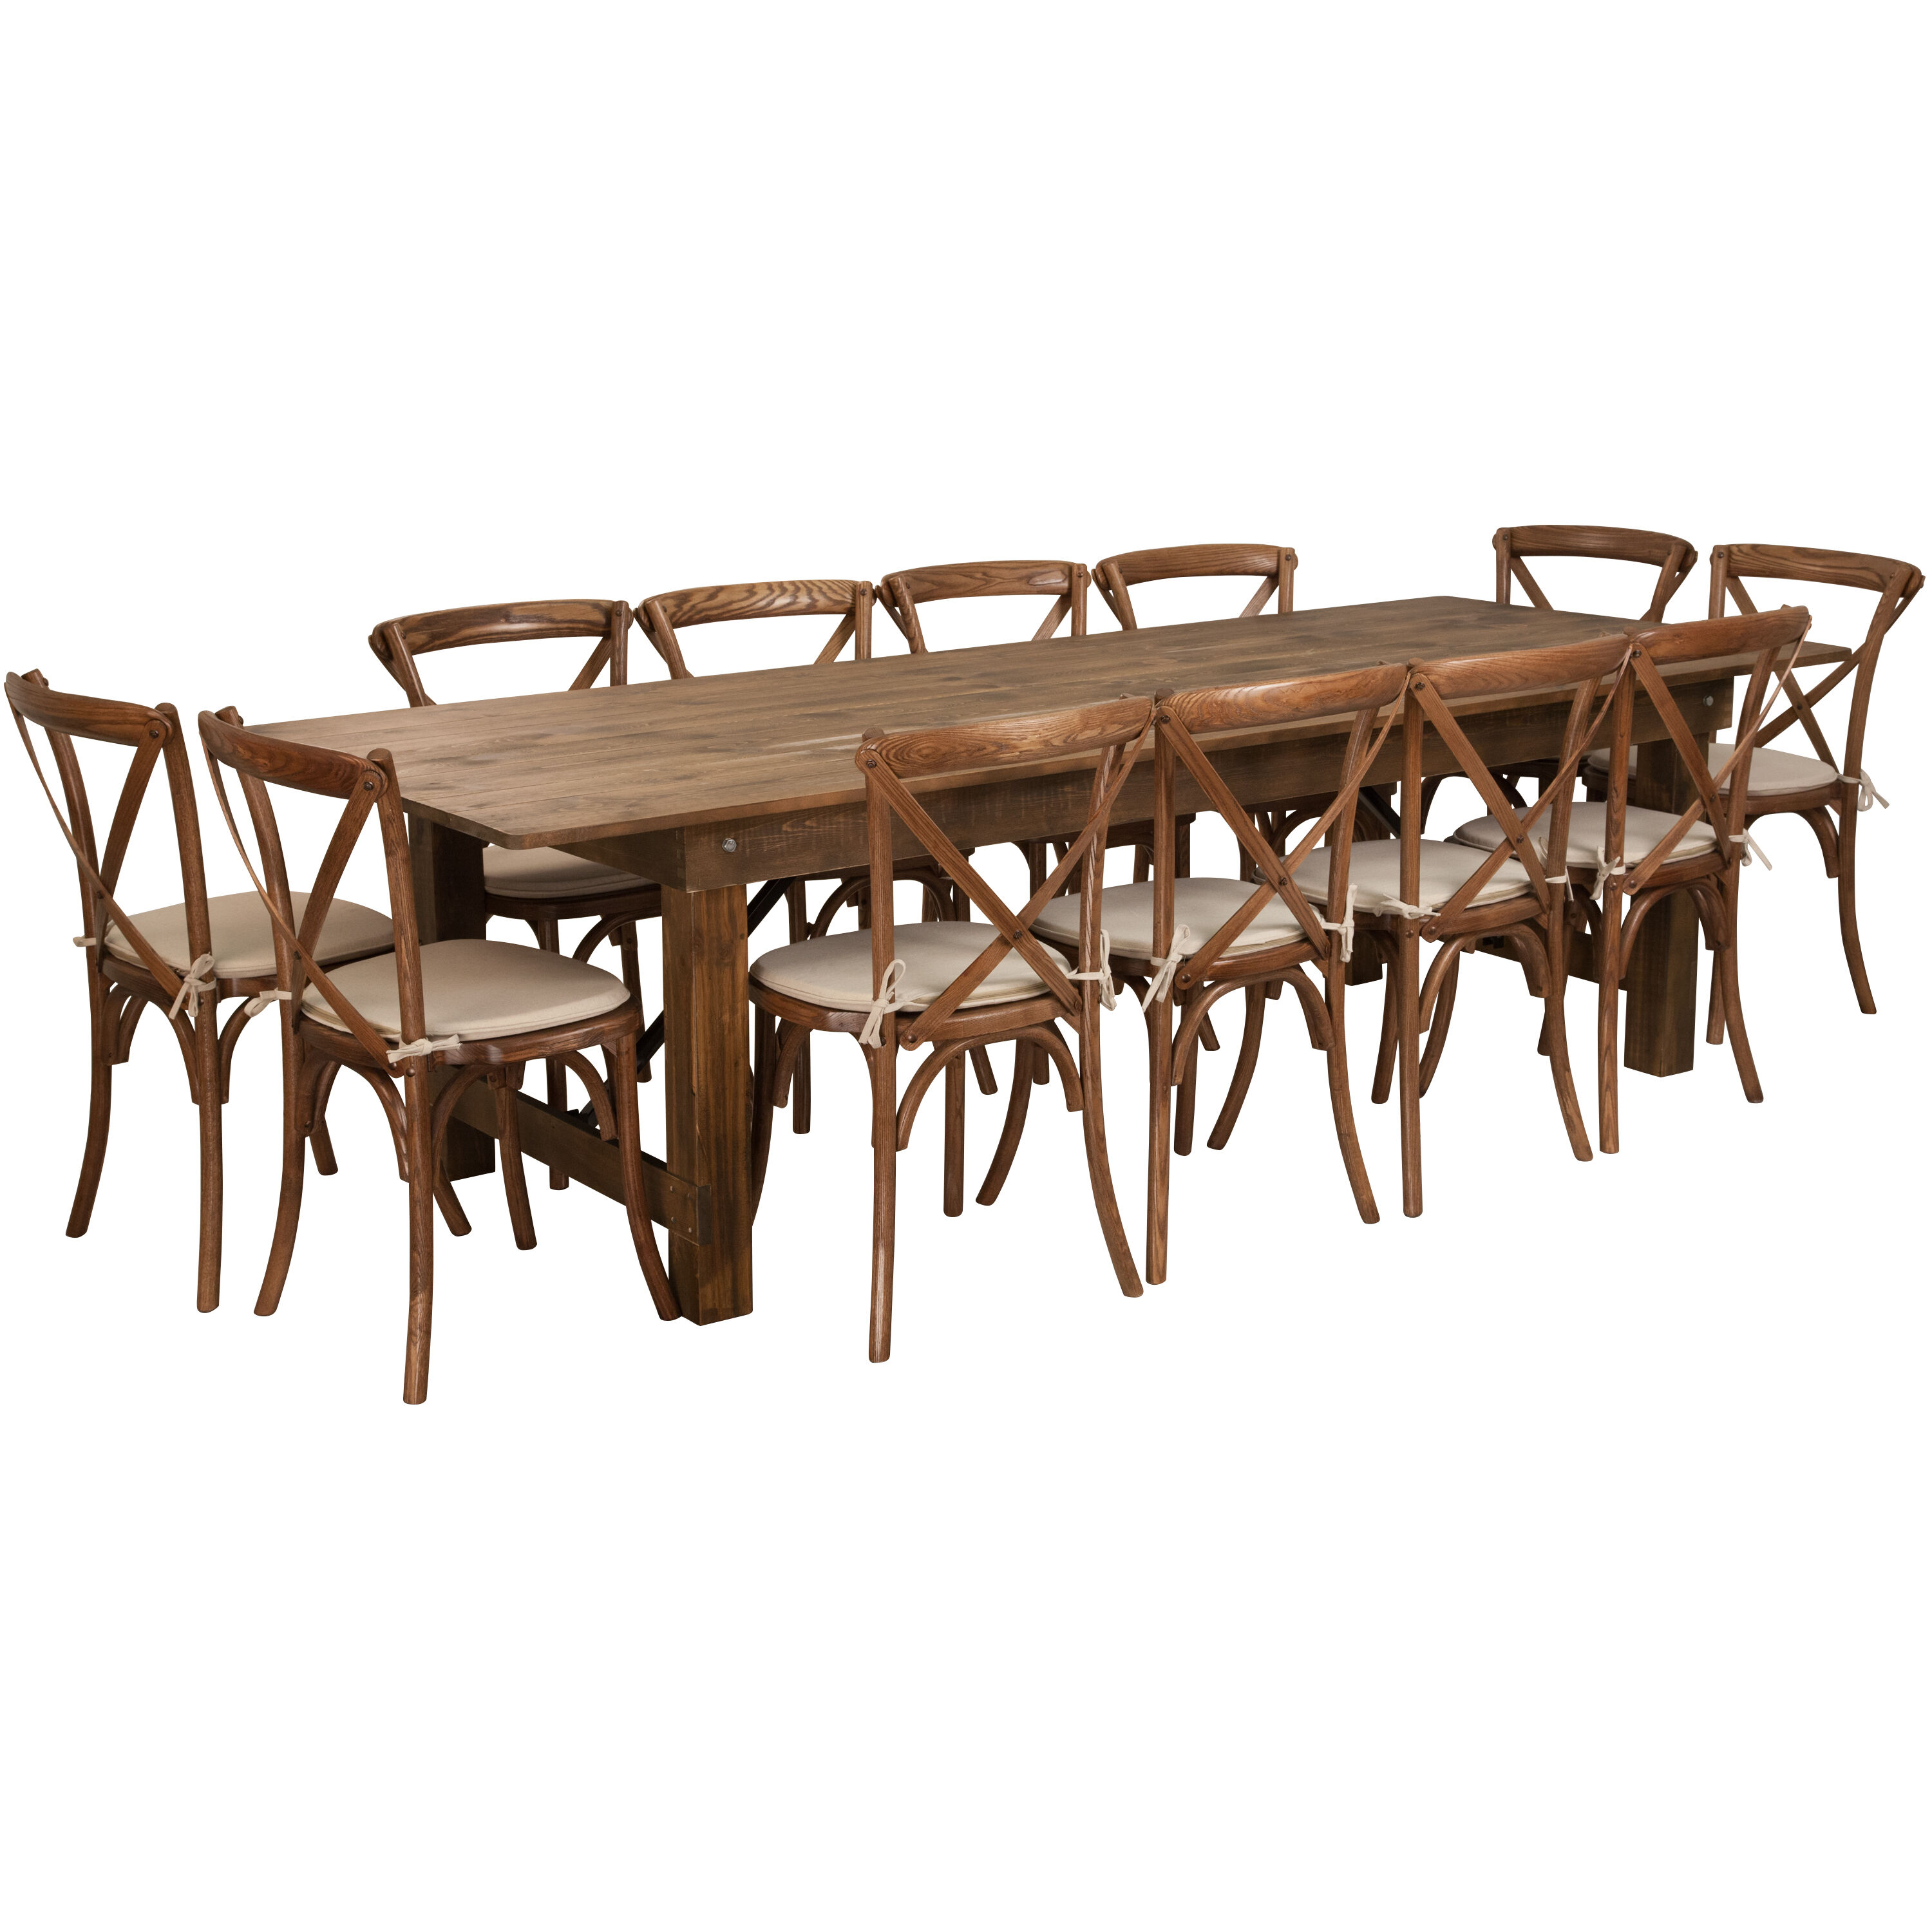 12 Chairs 9 39x40 Quot Farm Table 12 Chair Set Xa Farm 16 Gg